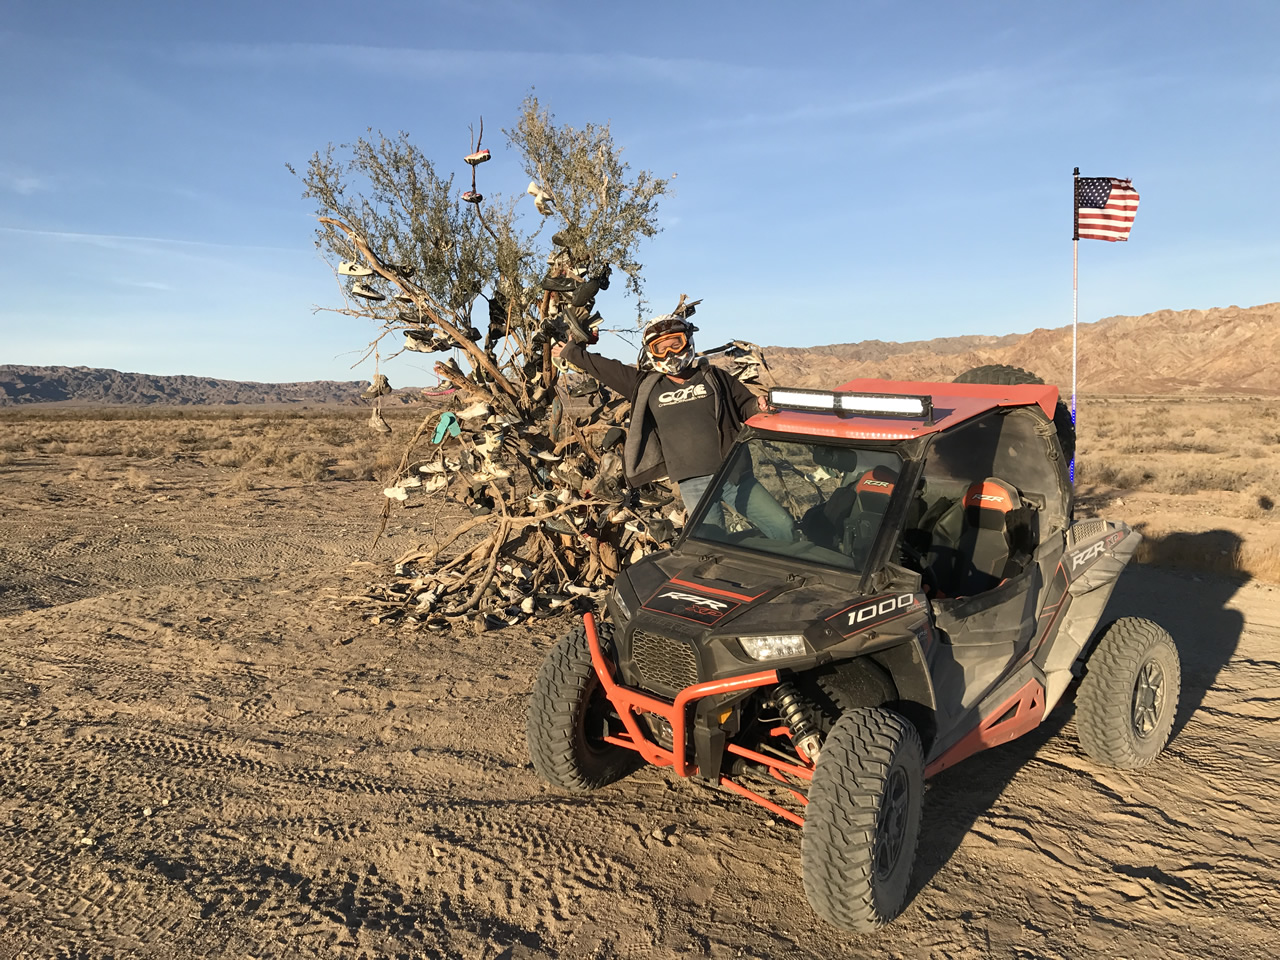 The shoe tree - on the trails near Glamis North Hot Springs